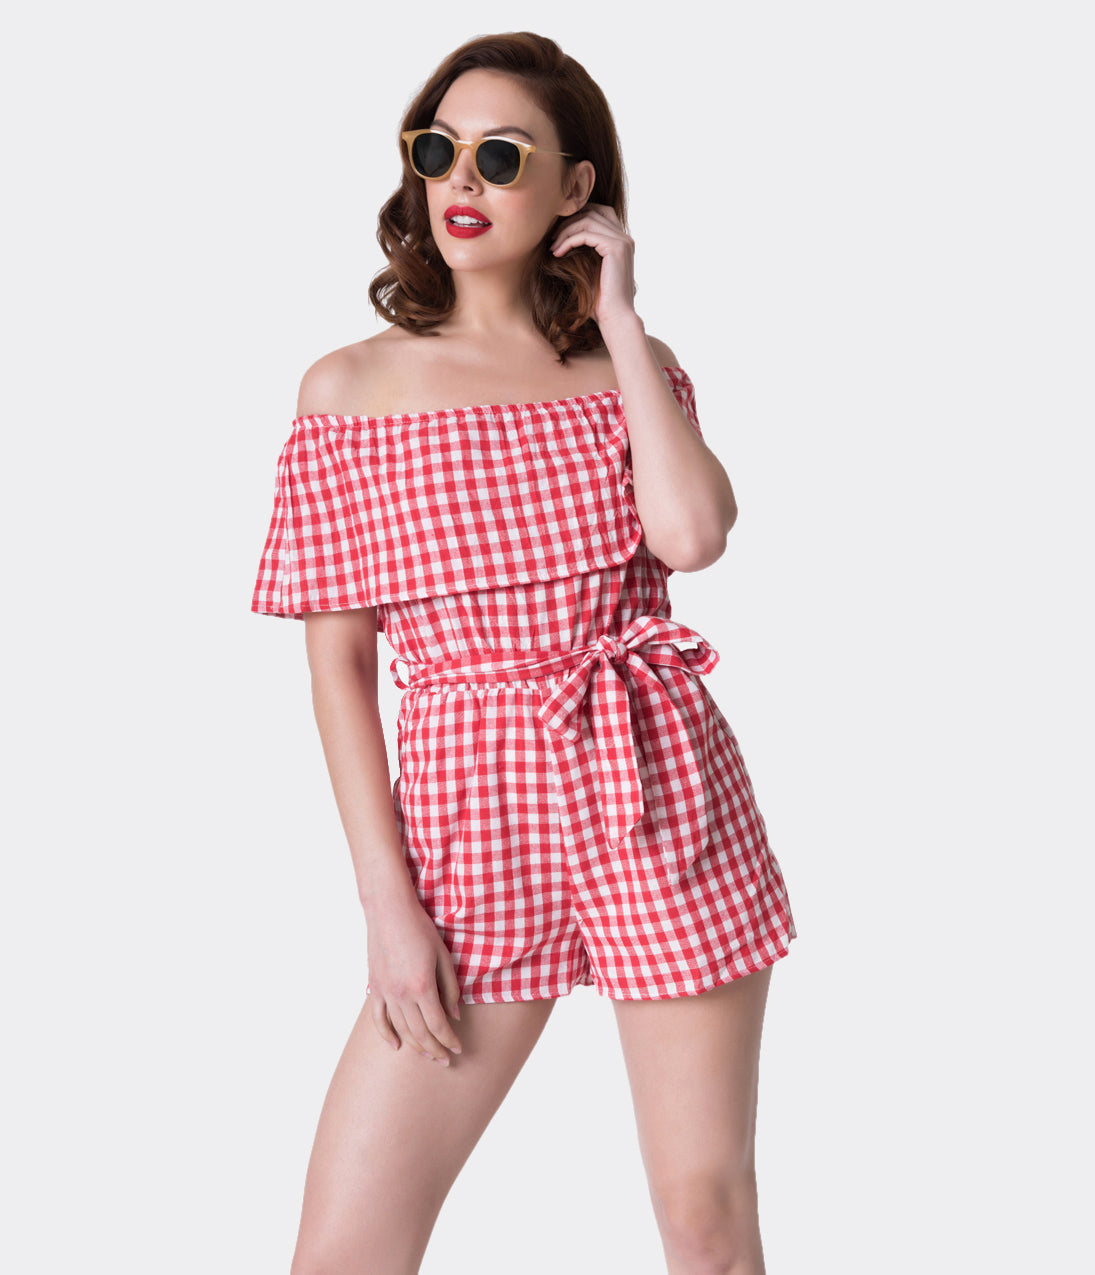 Vintage Rompers | Retro, Pin Up, Rockabilly Playsuits Retro Style Red  White Gingham Off The Shoulder Romper $42.00 AT vintagedancer.com